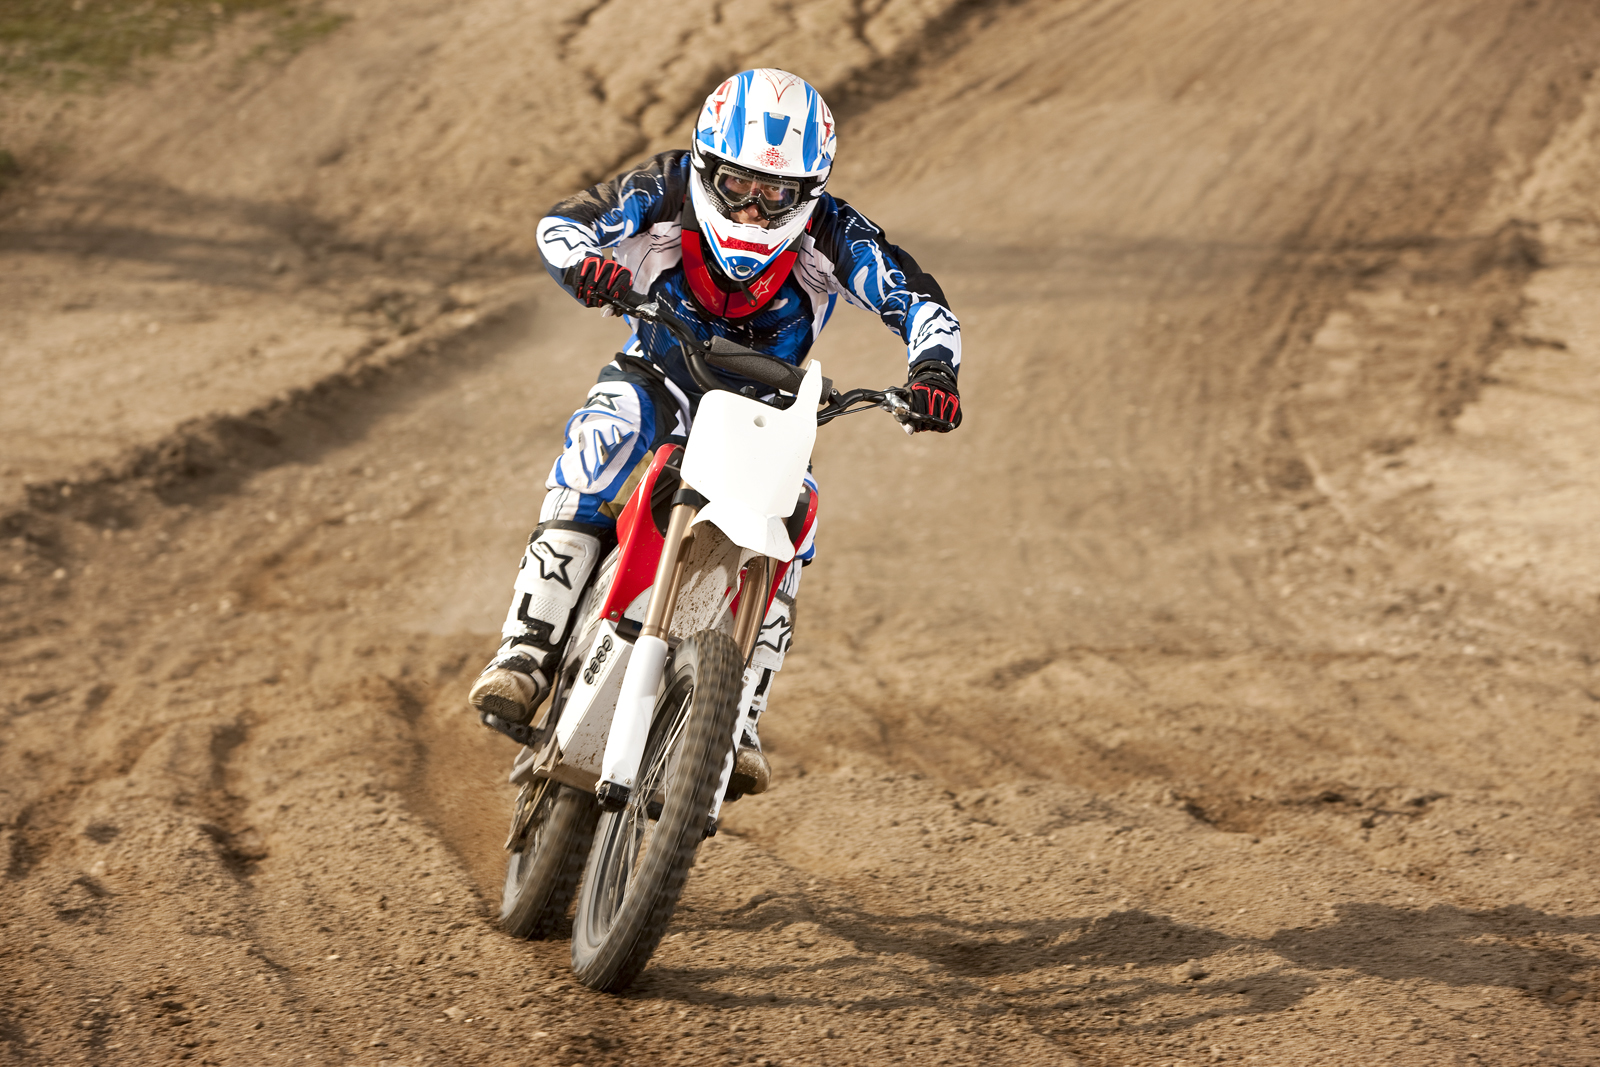 2010 Zero MX Electric Motorcycle: Zaca Station - Charging Downhill